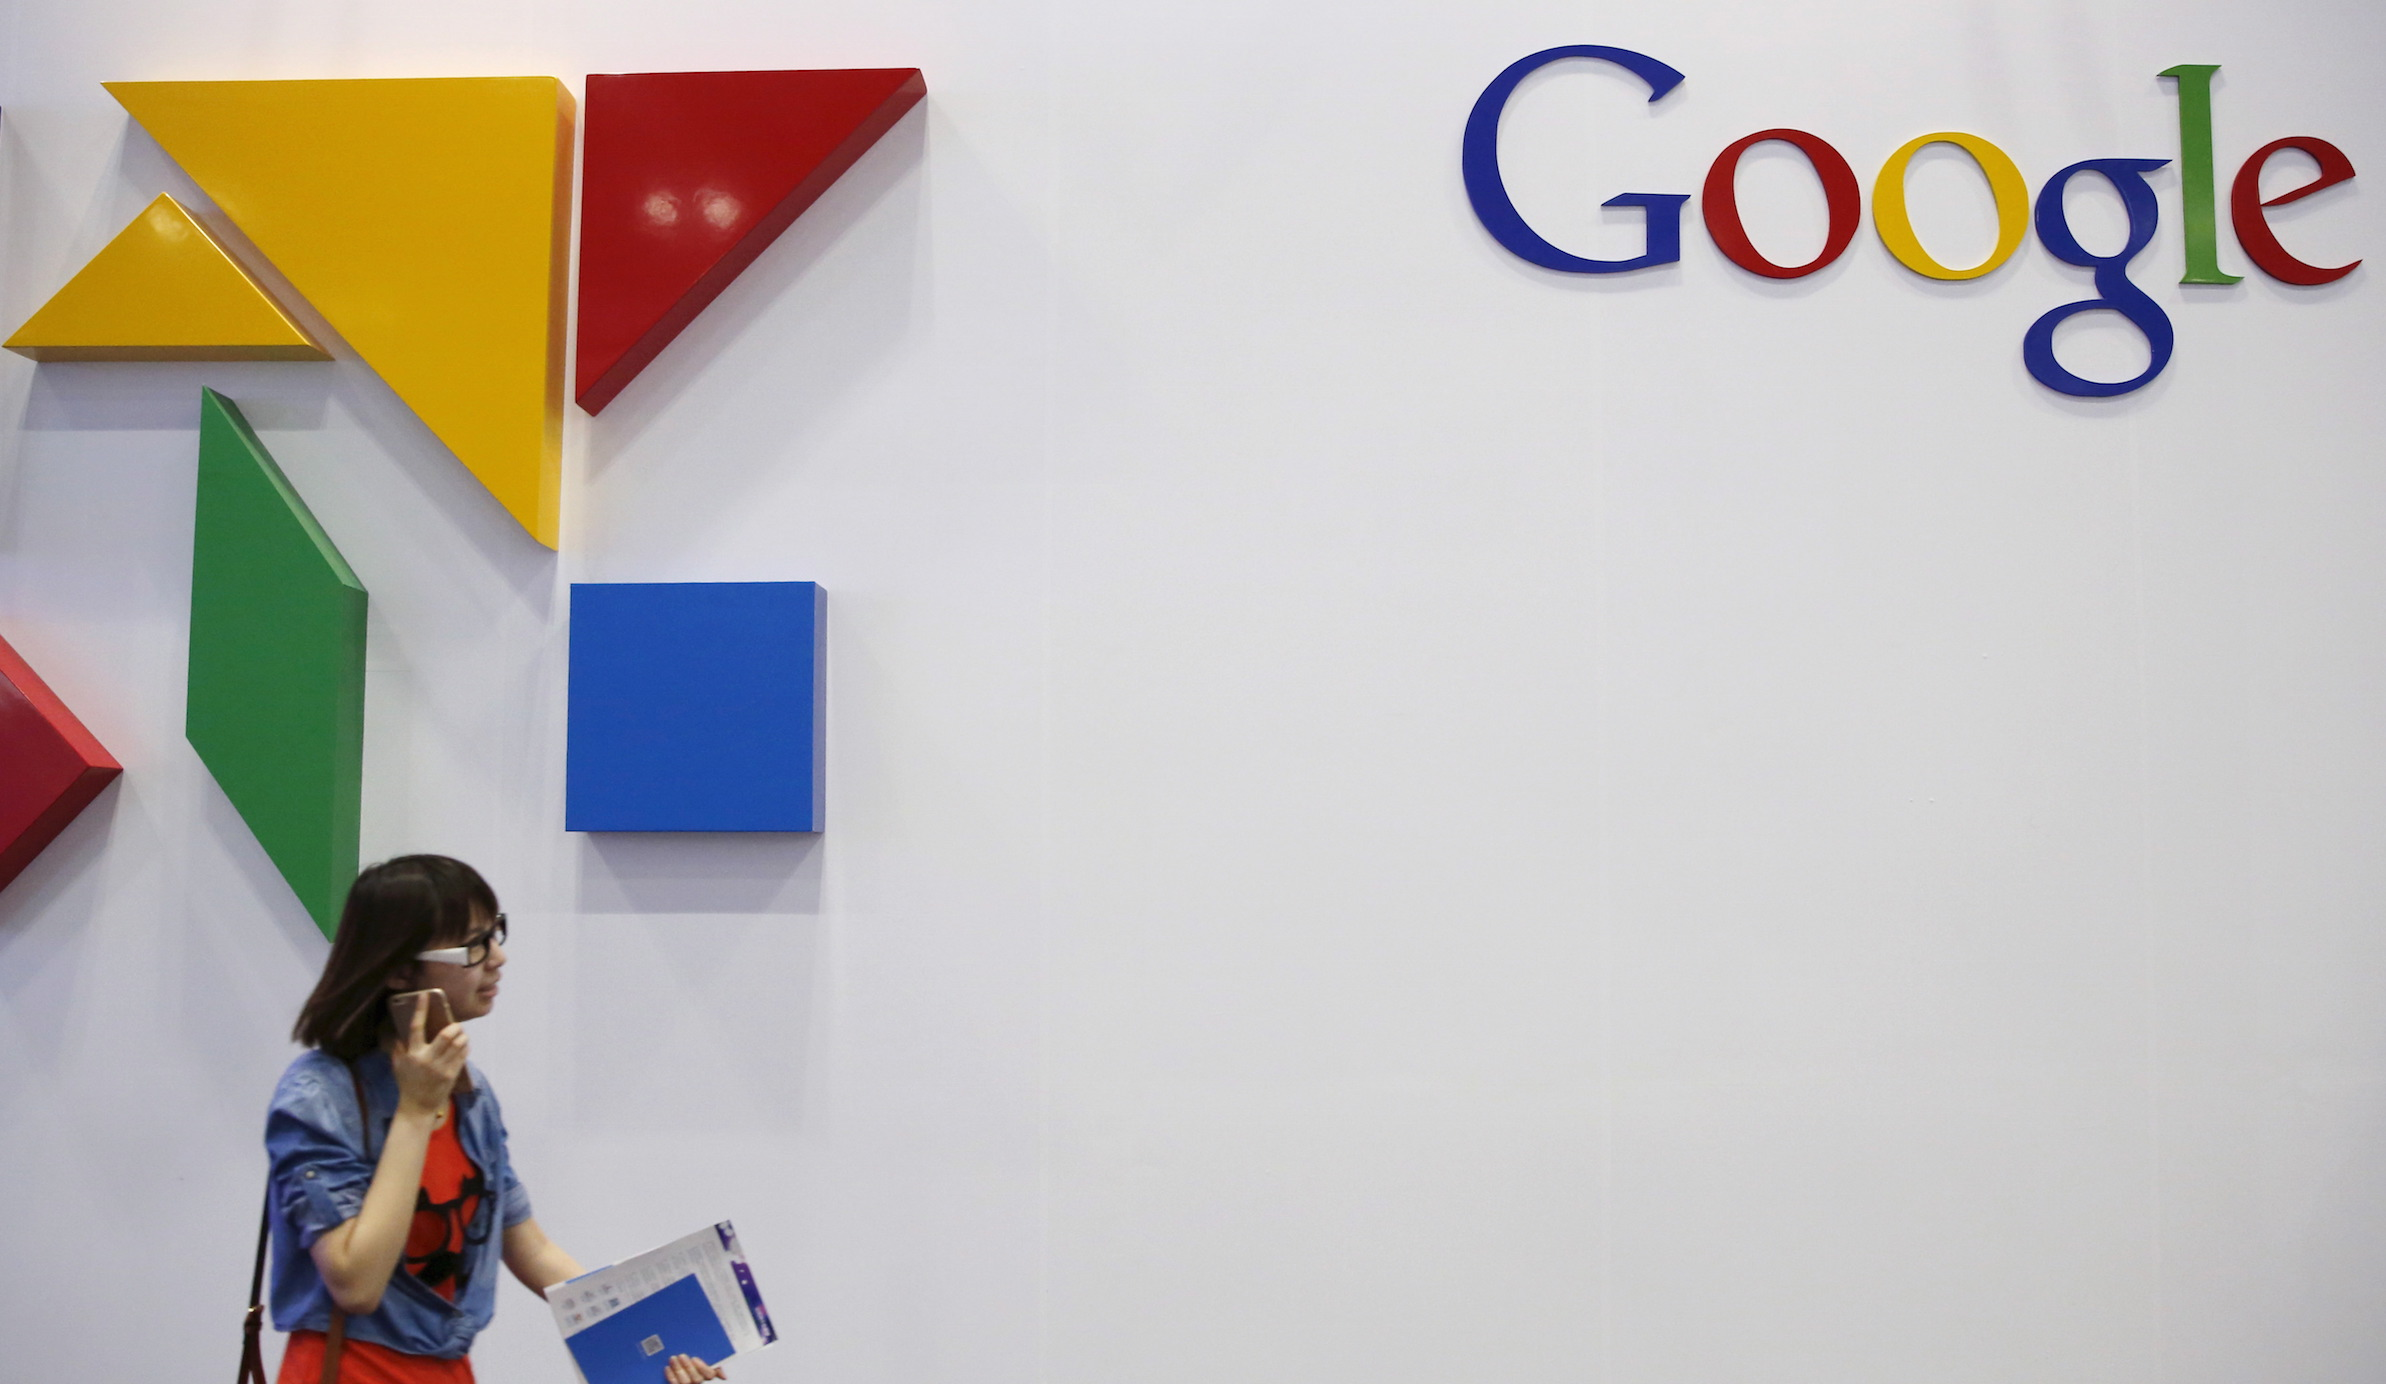 There's reportedly a big, secret spreadsheet where Google employees